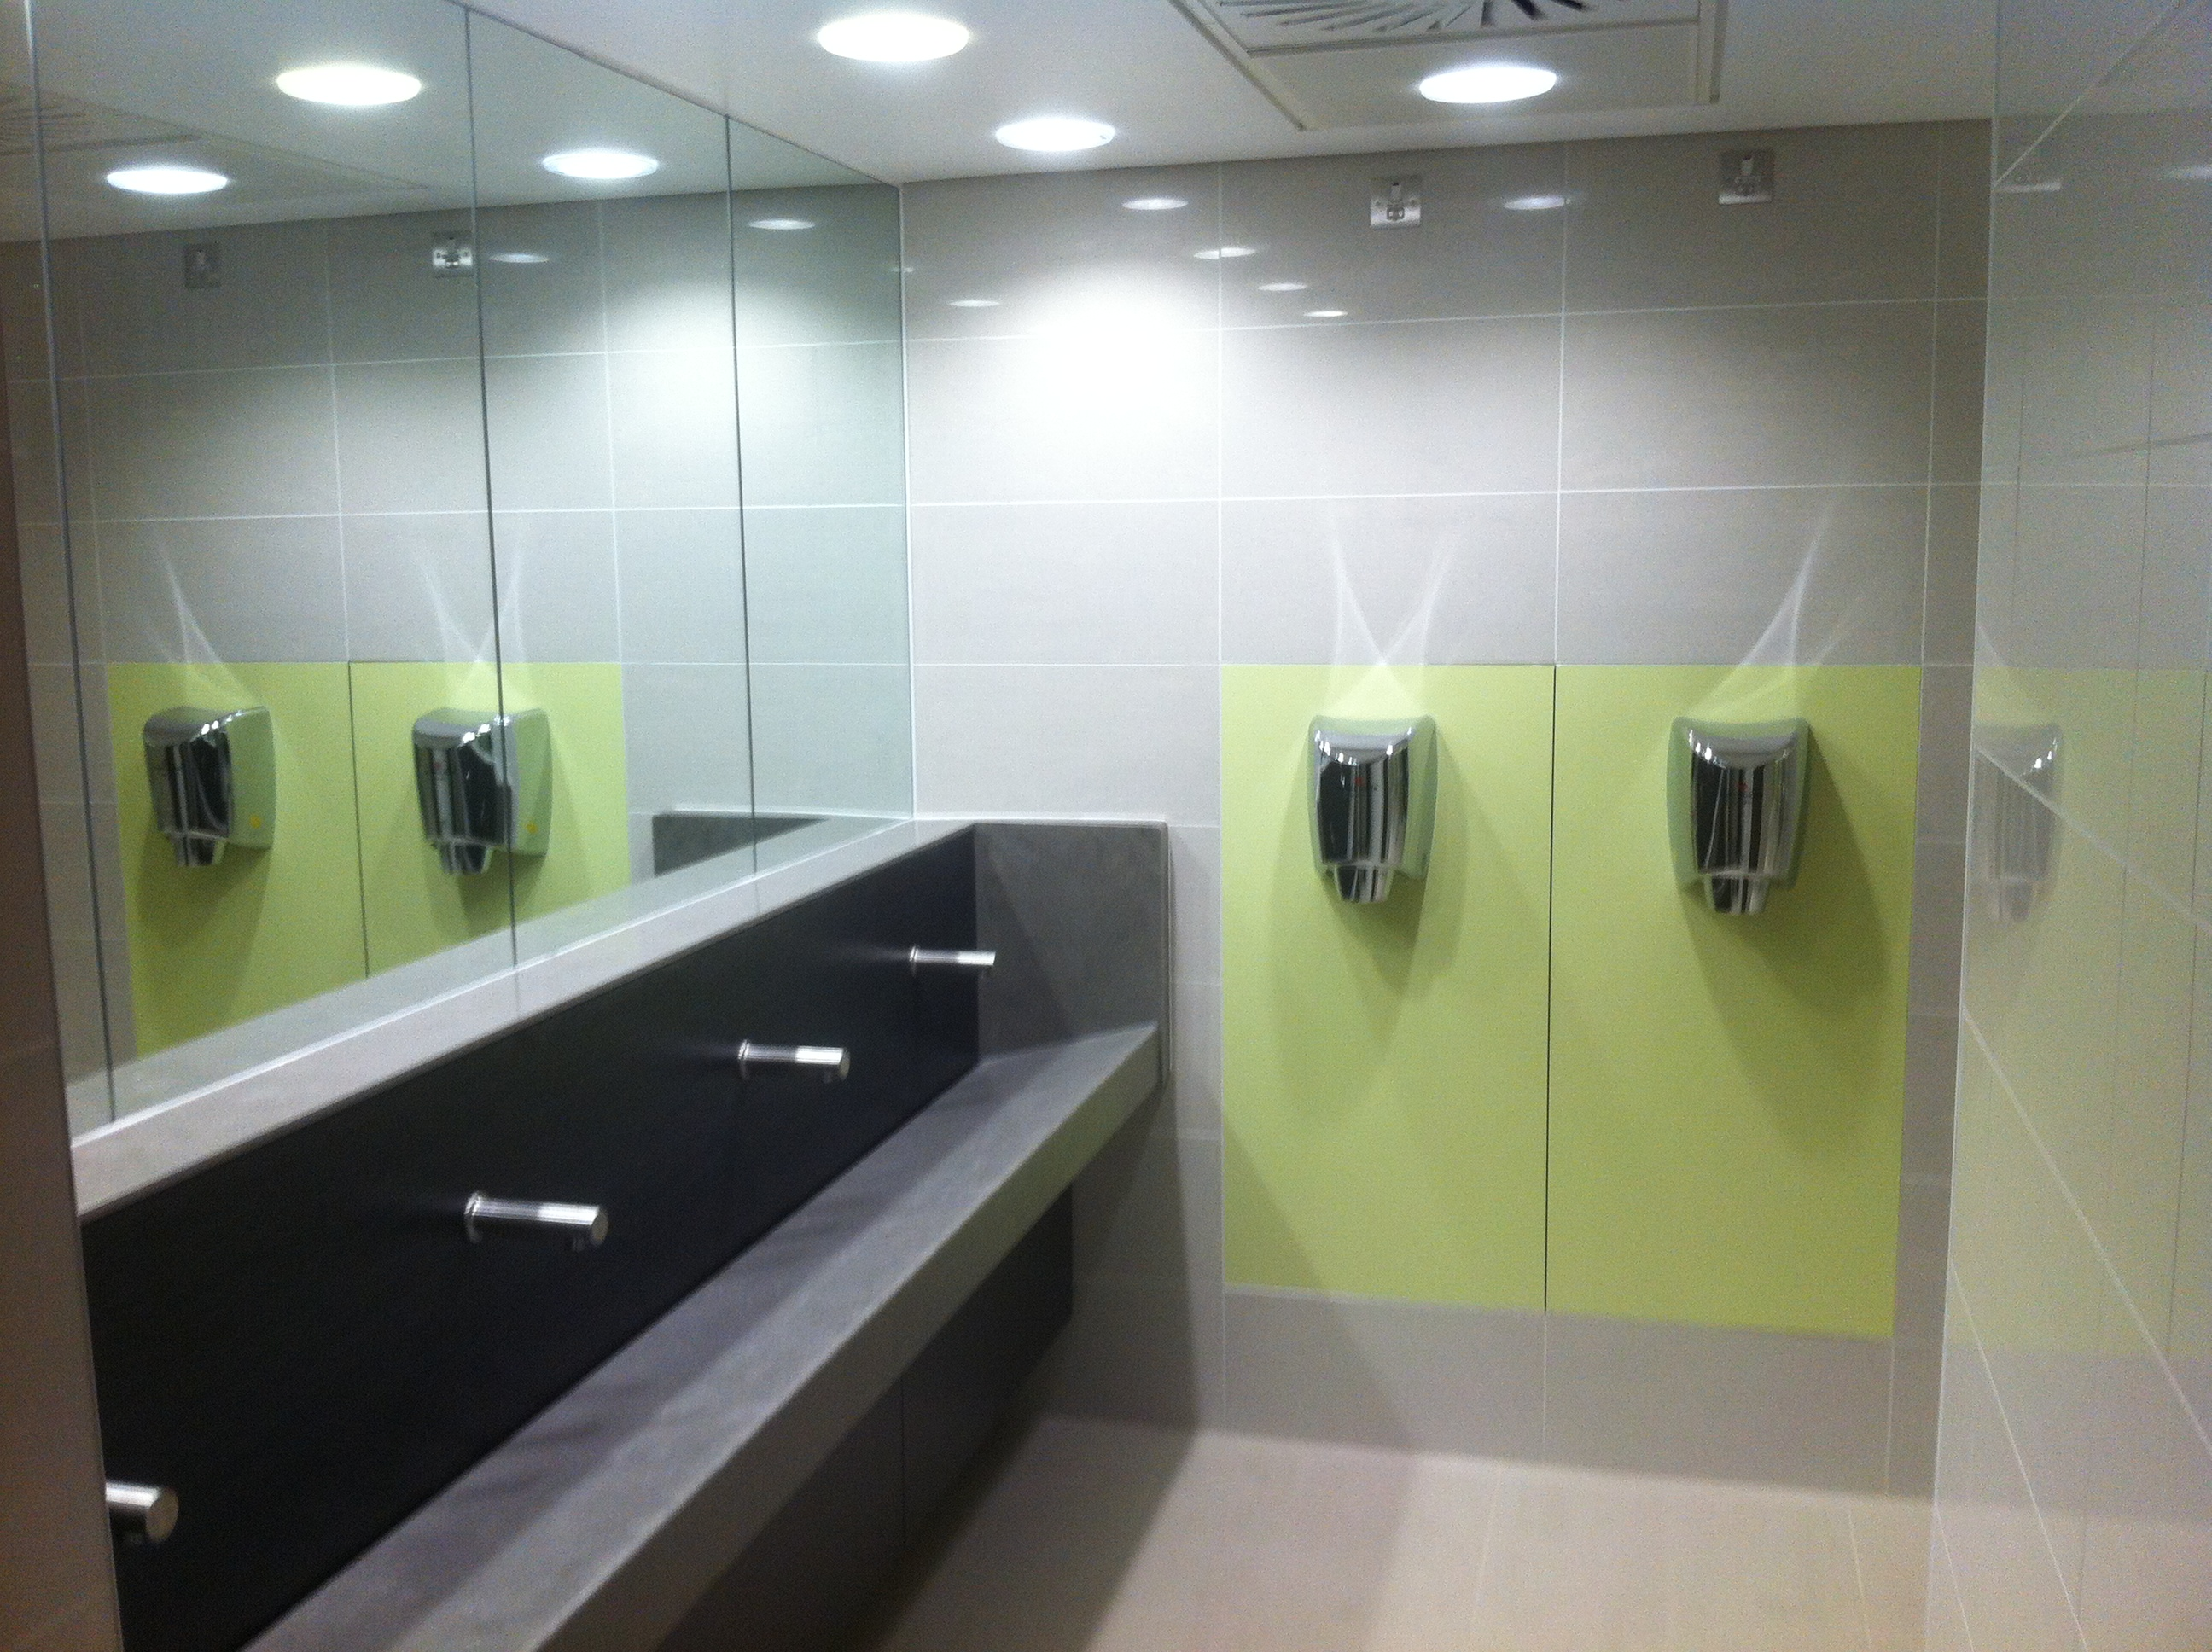 Thomas Cook Toilets Aq Construction Services Limited